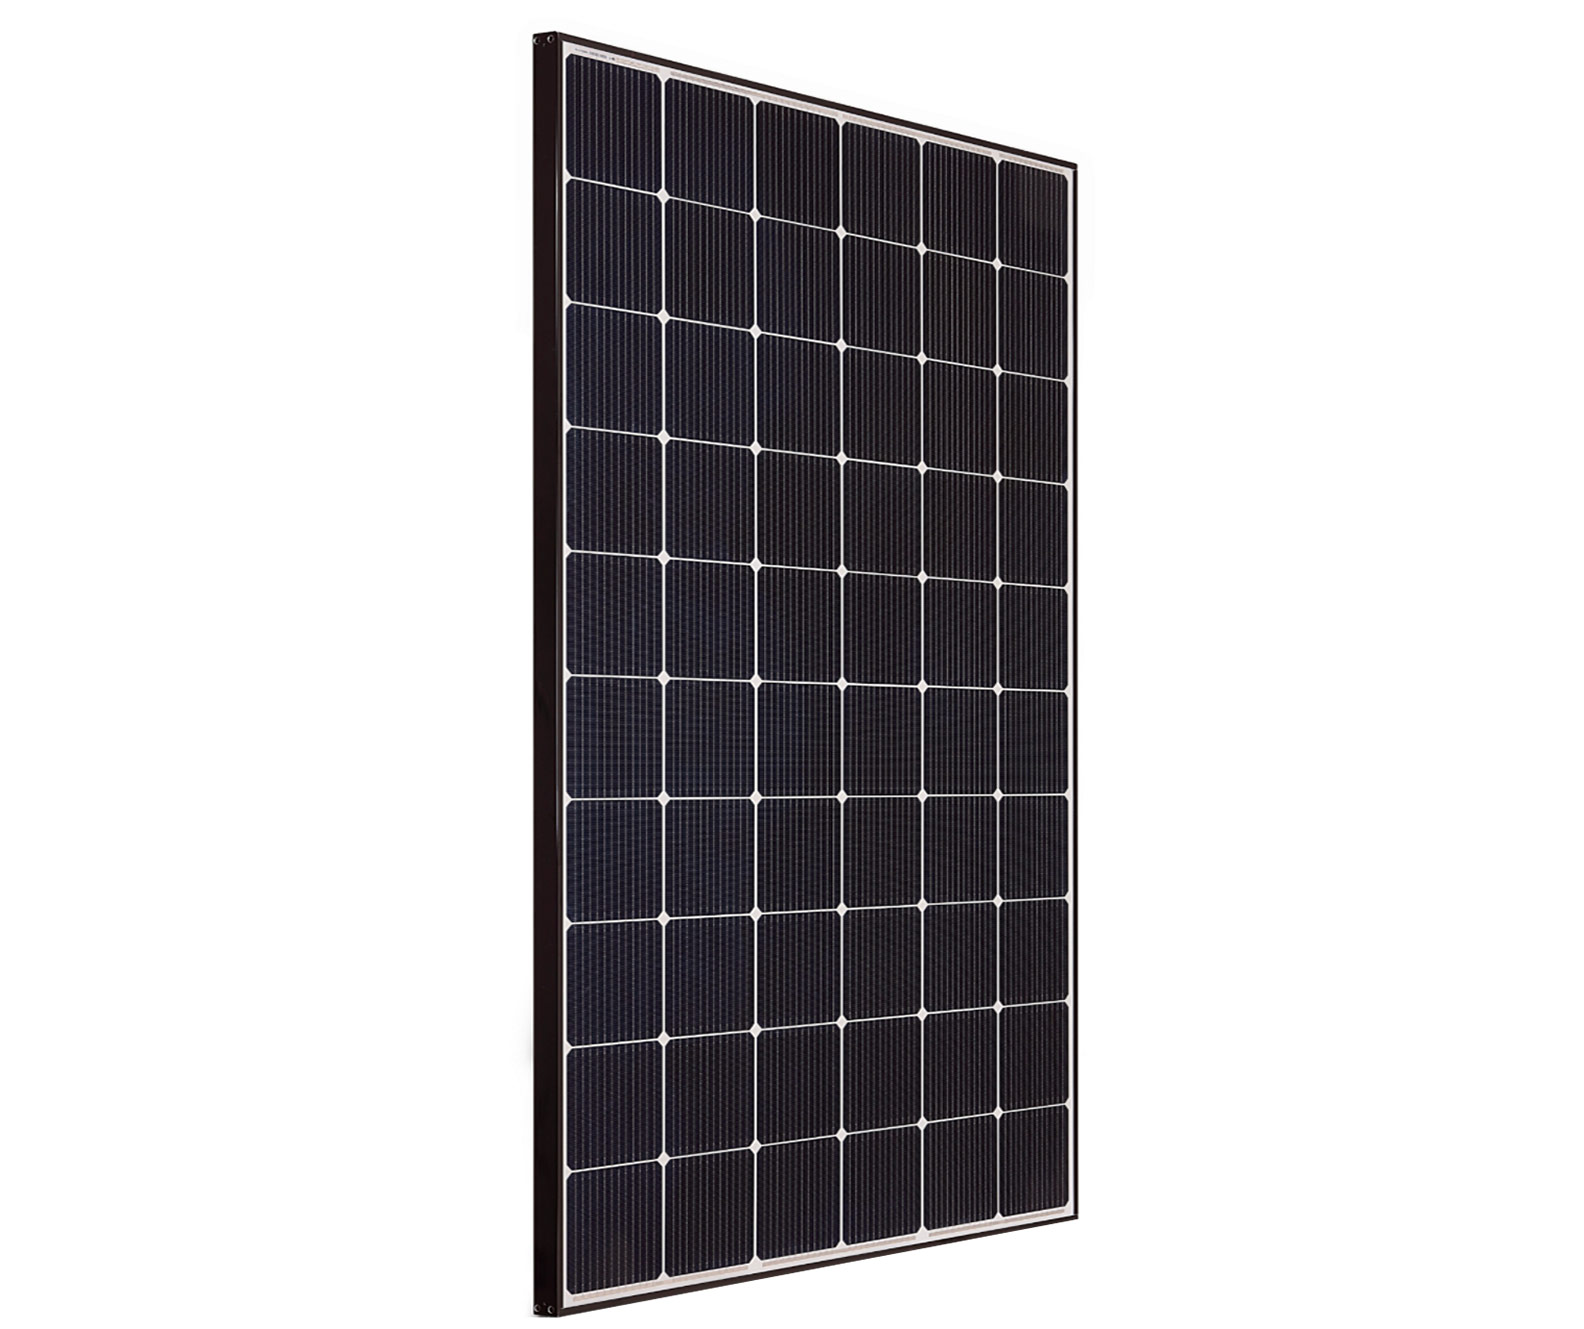 LG 335 Watt Module - Resonant Price: $3.45/watt. Matching high efficiency with affordability, the LG 335 is most popular for residents who want to maximize their roof potential.